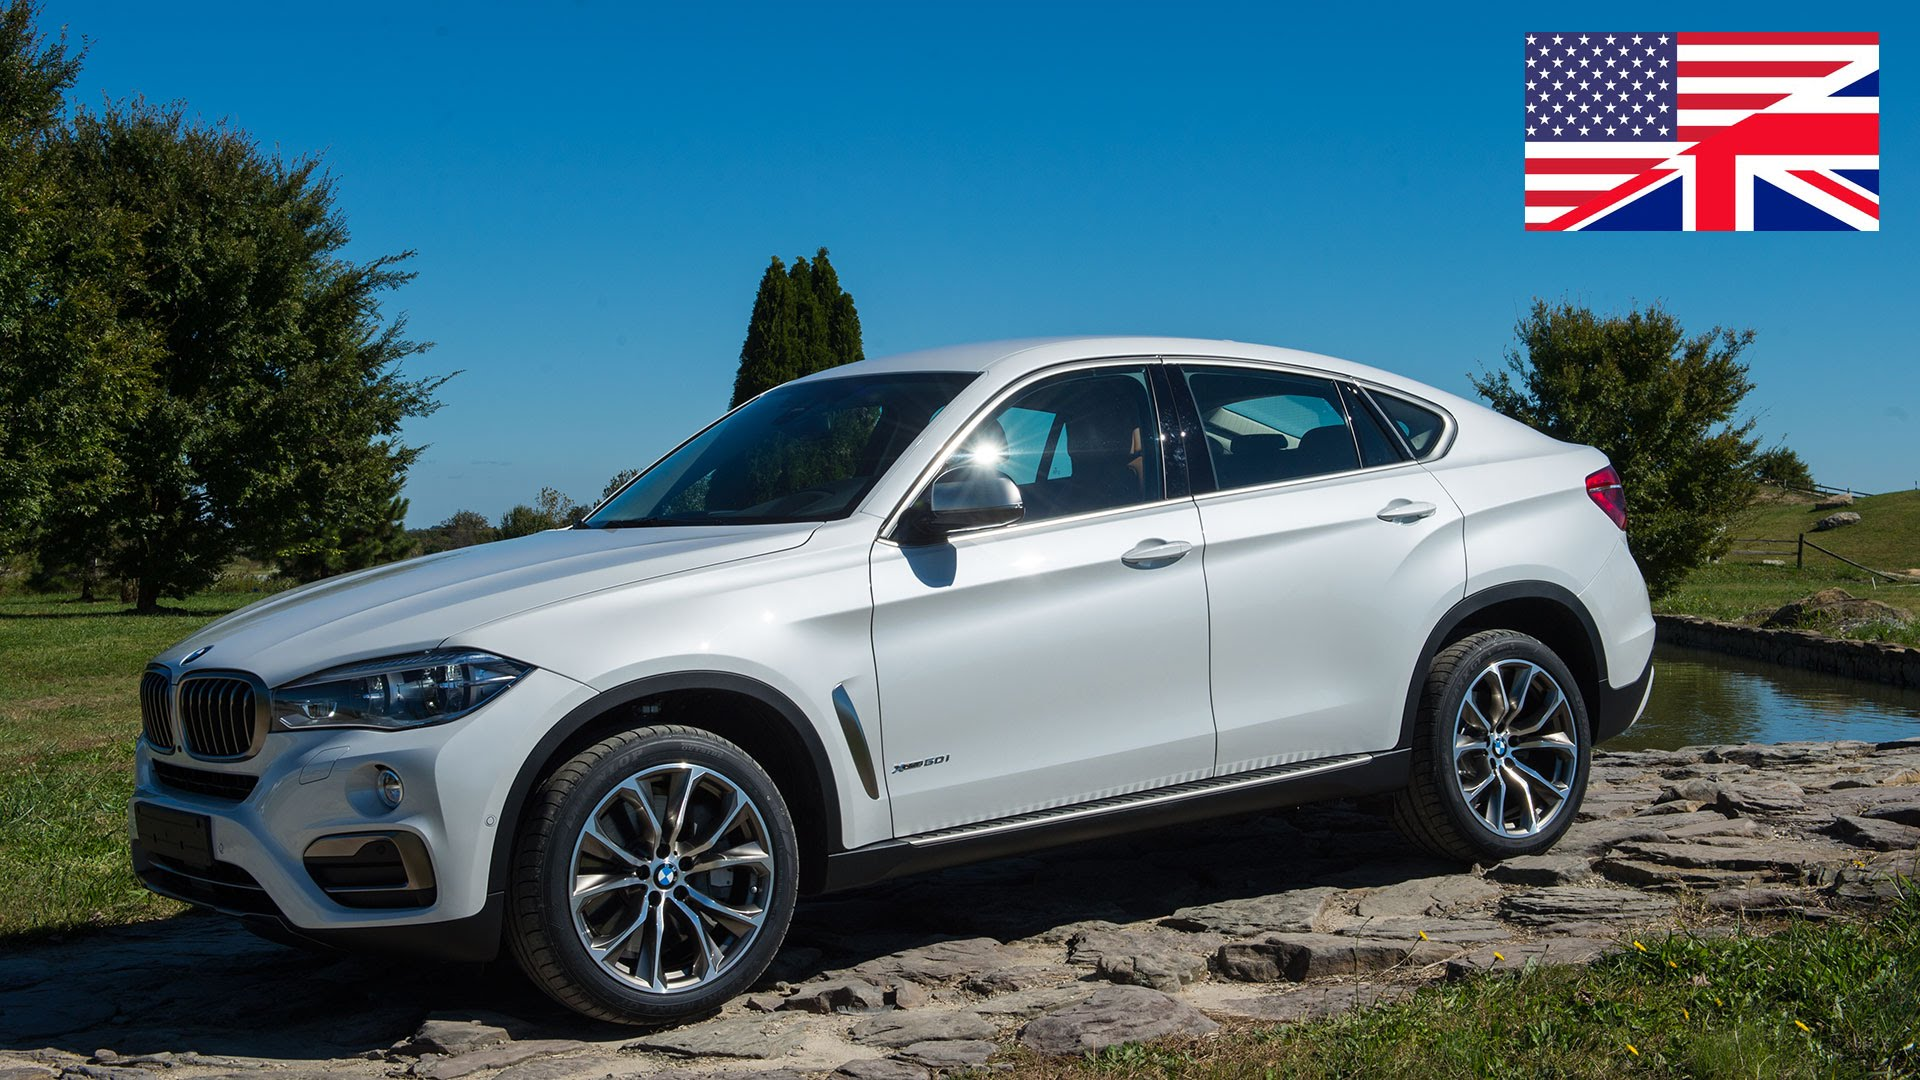 2015 bmw x6 information and photos zombiedrive. Black Bedroom Furniture Sets. Home Design Ideas